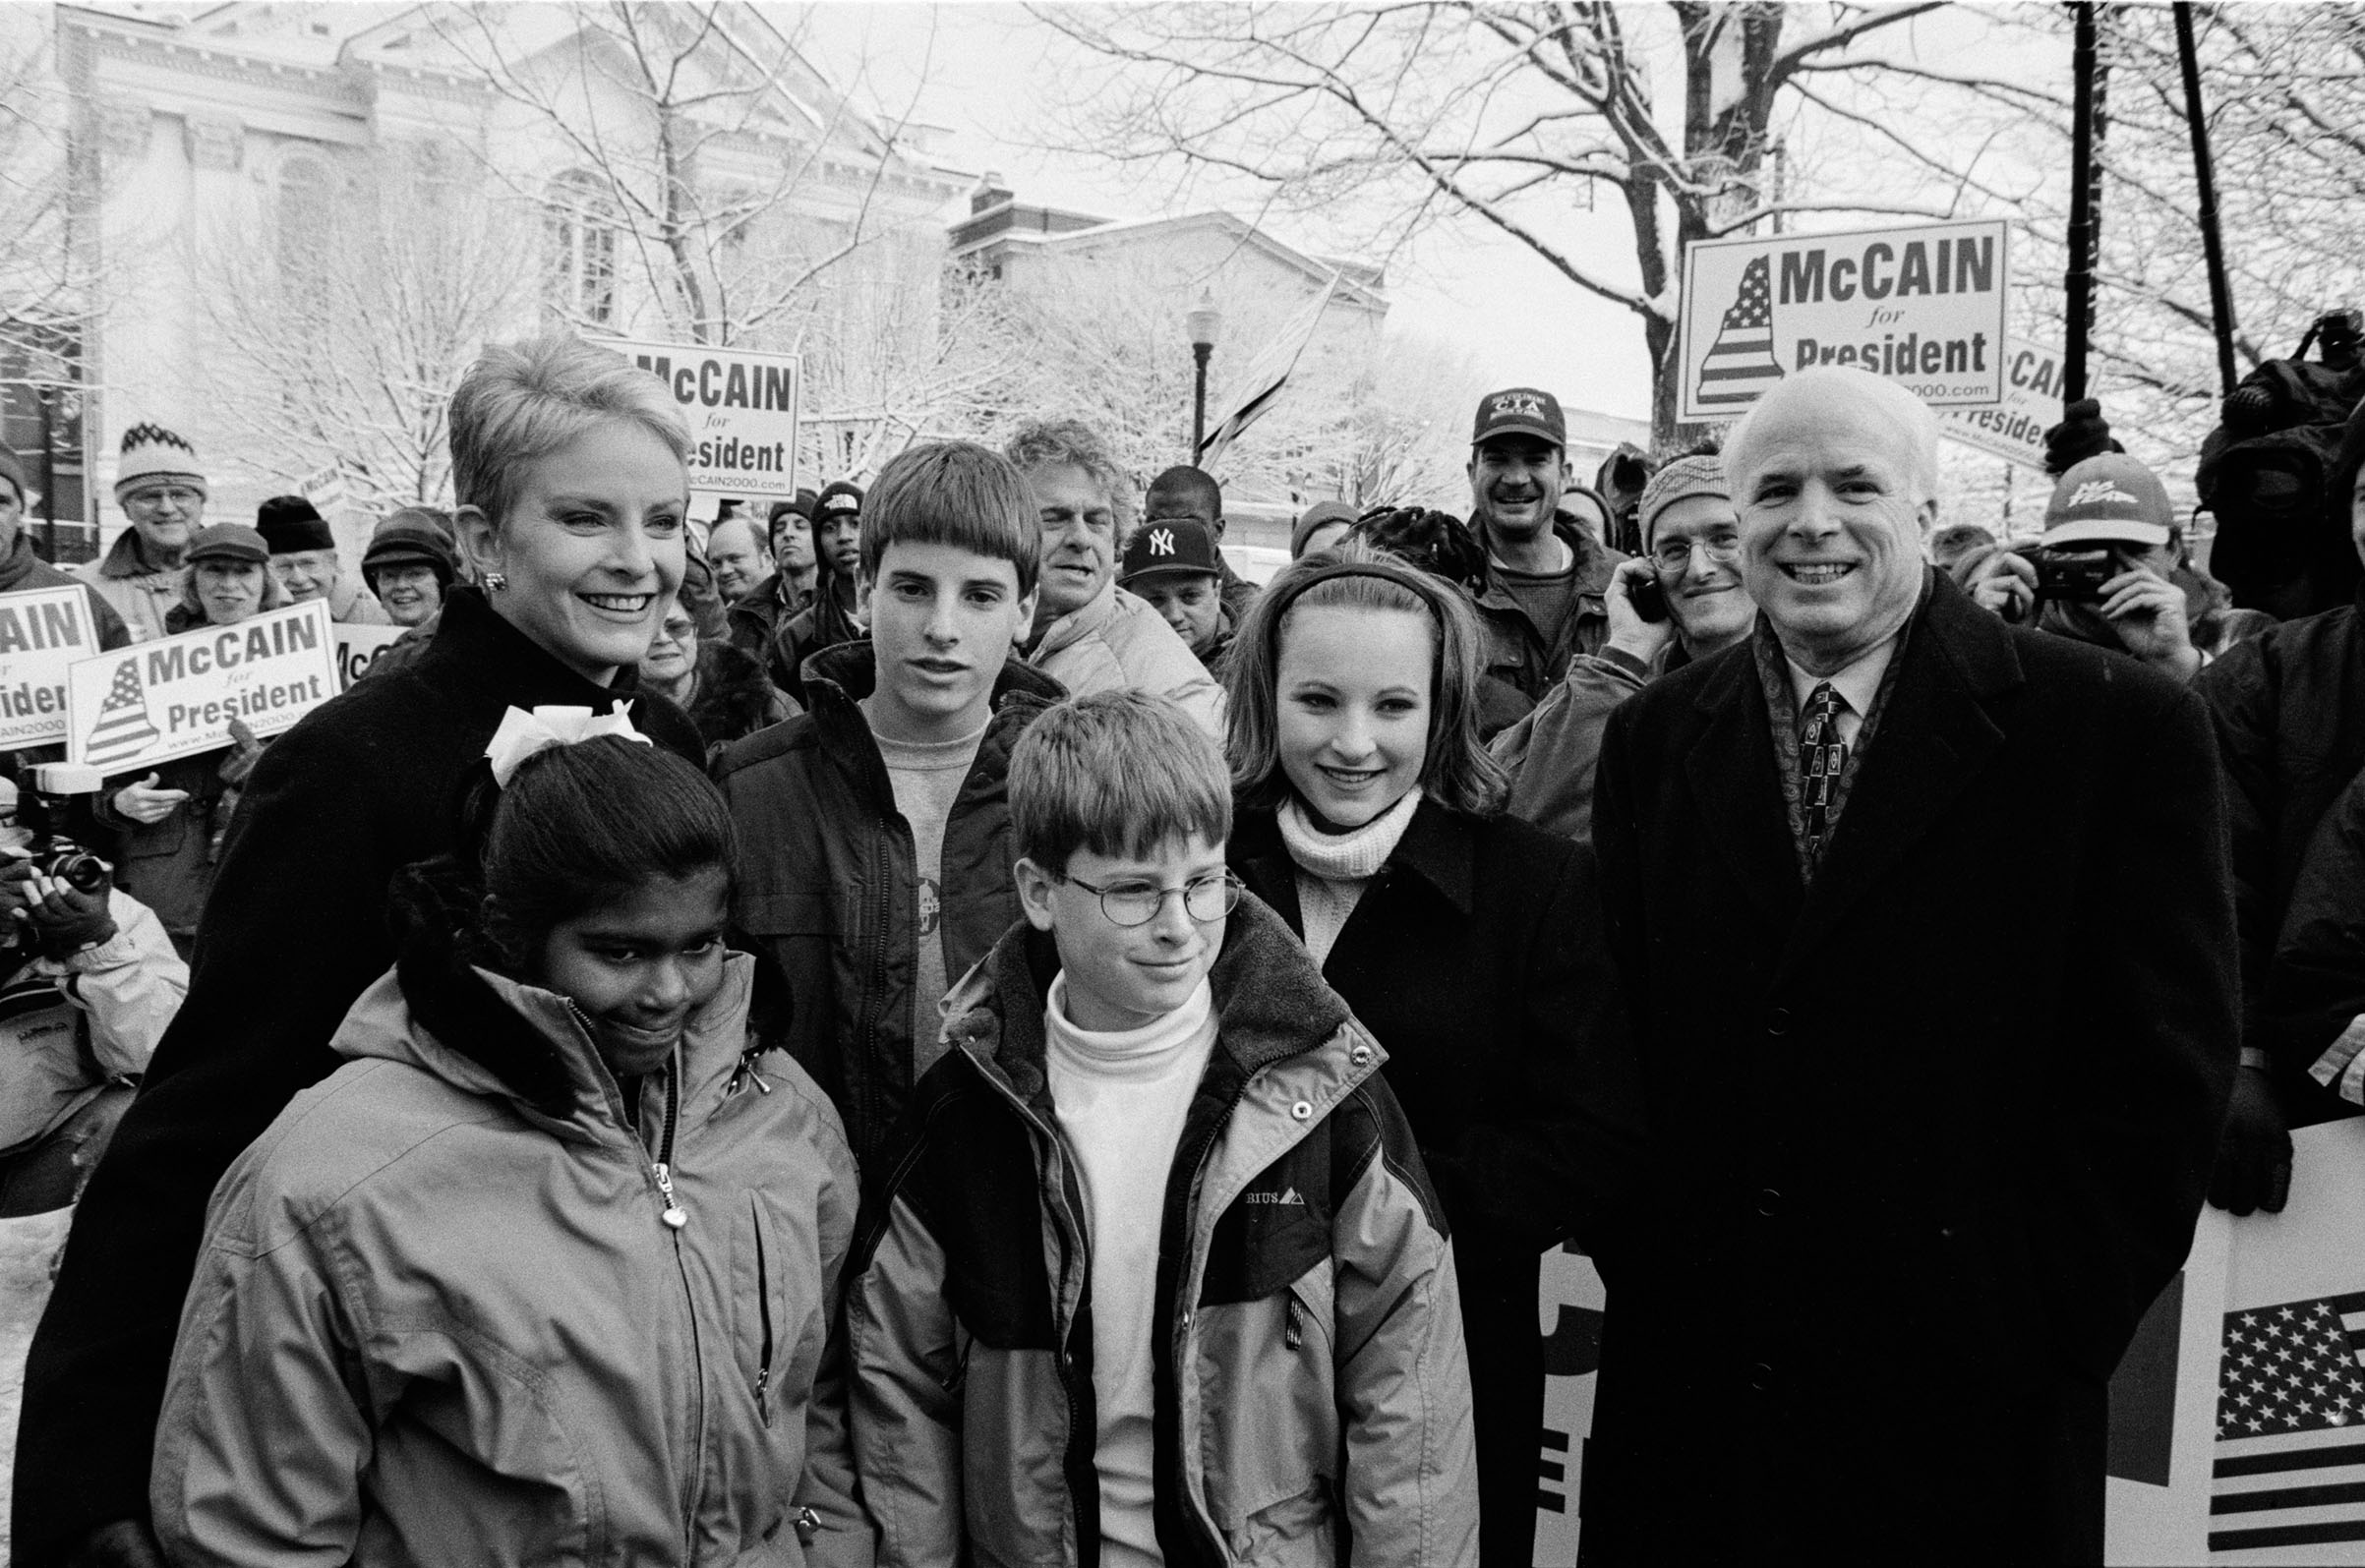 John McCain at a rally in the park with his family: (L-R) daughter Bridget (8), wife Cindy, sons Jack (13) and Jimmy (10), and daughter Meghan (15), in Keene, NH on Jan. 31, 2000.